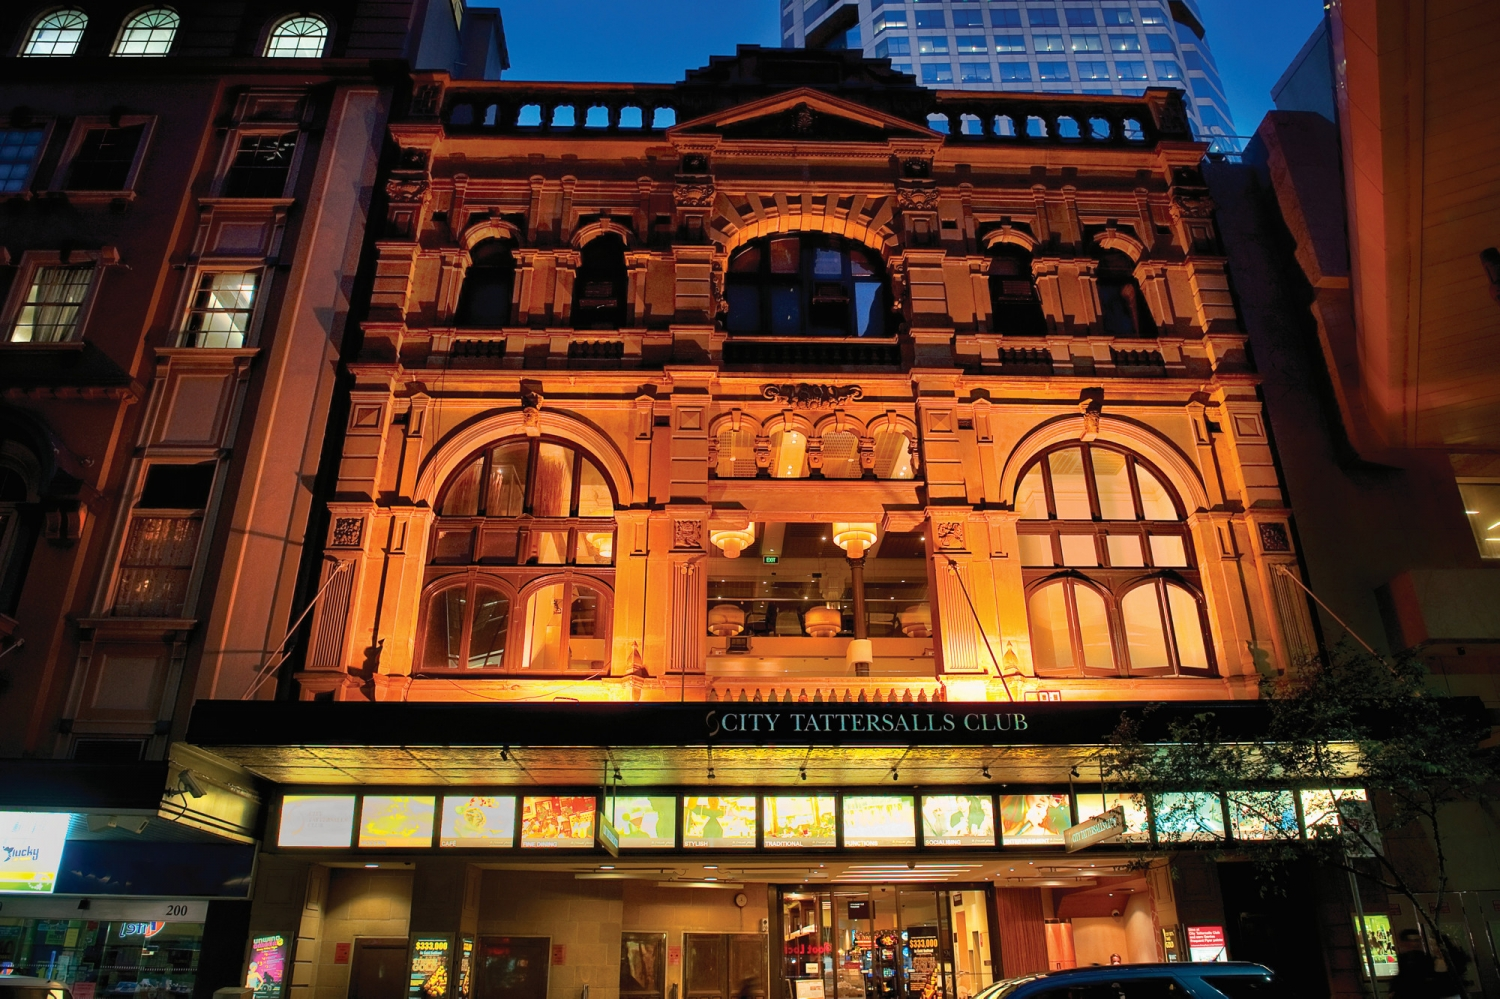 Exterior of City Tattersalls club taken from Pitt Street at night.